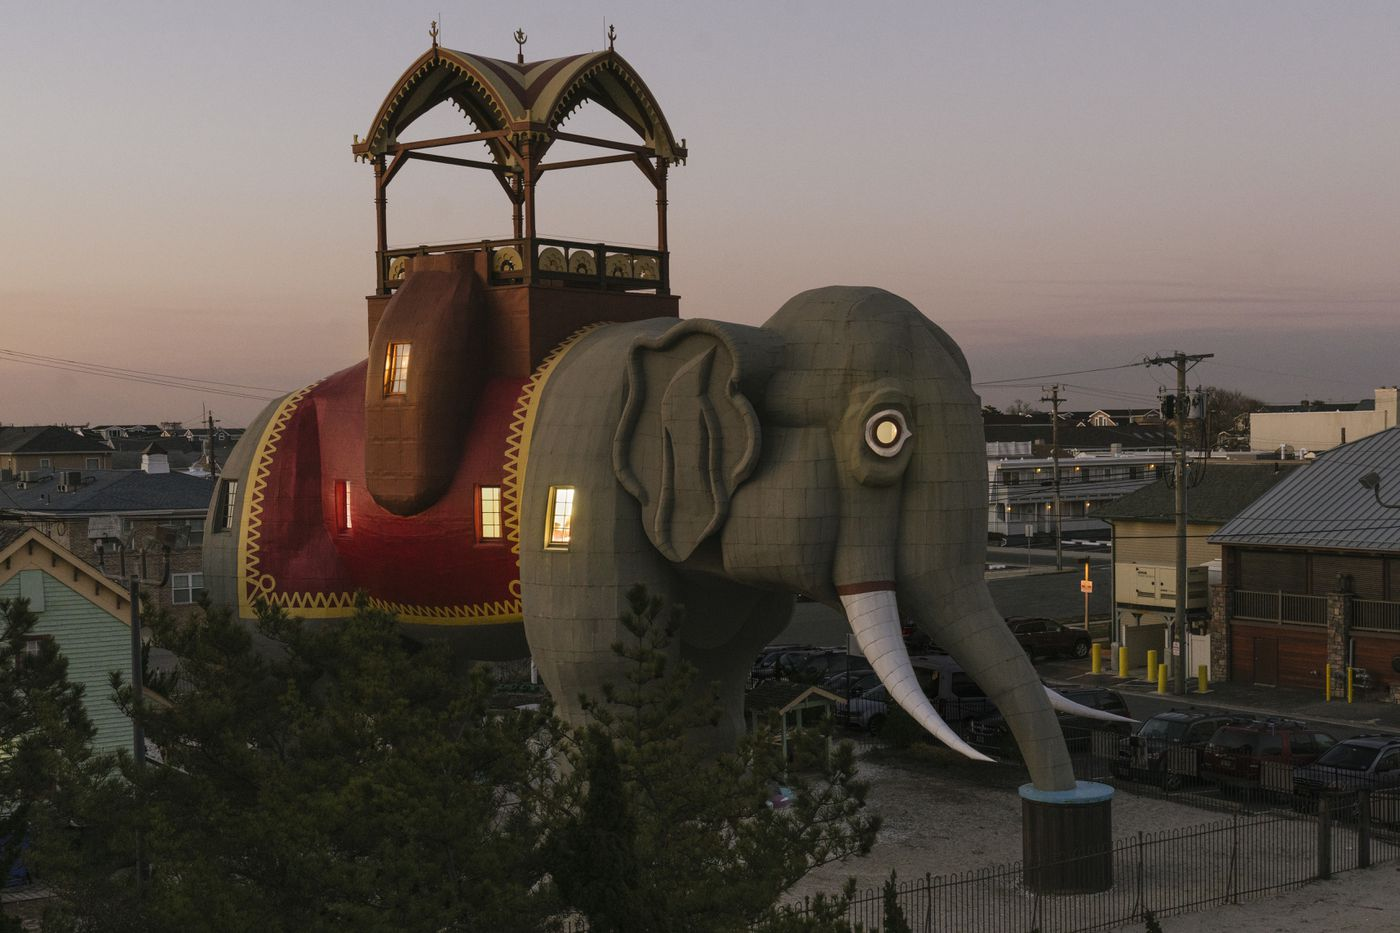 Margate's iconic Lucy the Elephant was listed on Airbnb for the first time, but it's first reservations have been postponed due to the coronavirus.